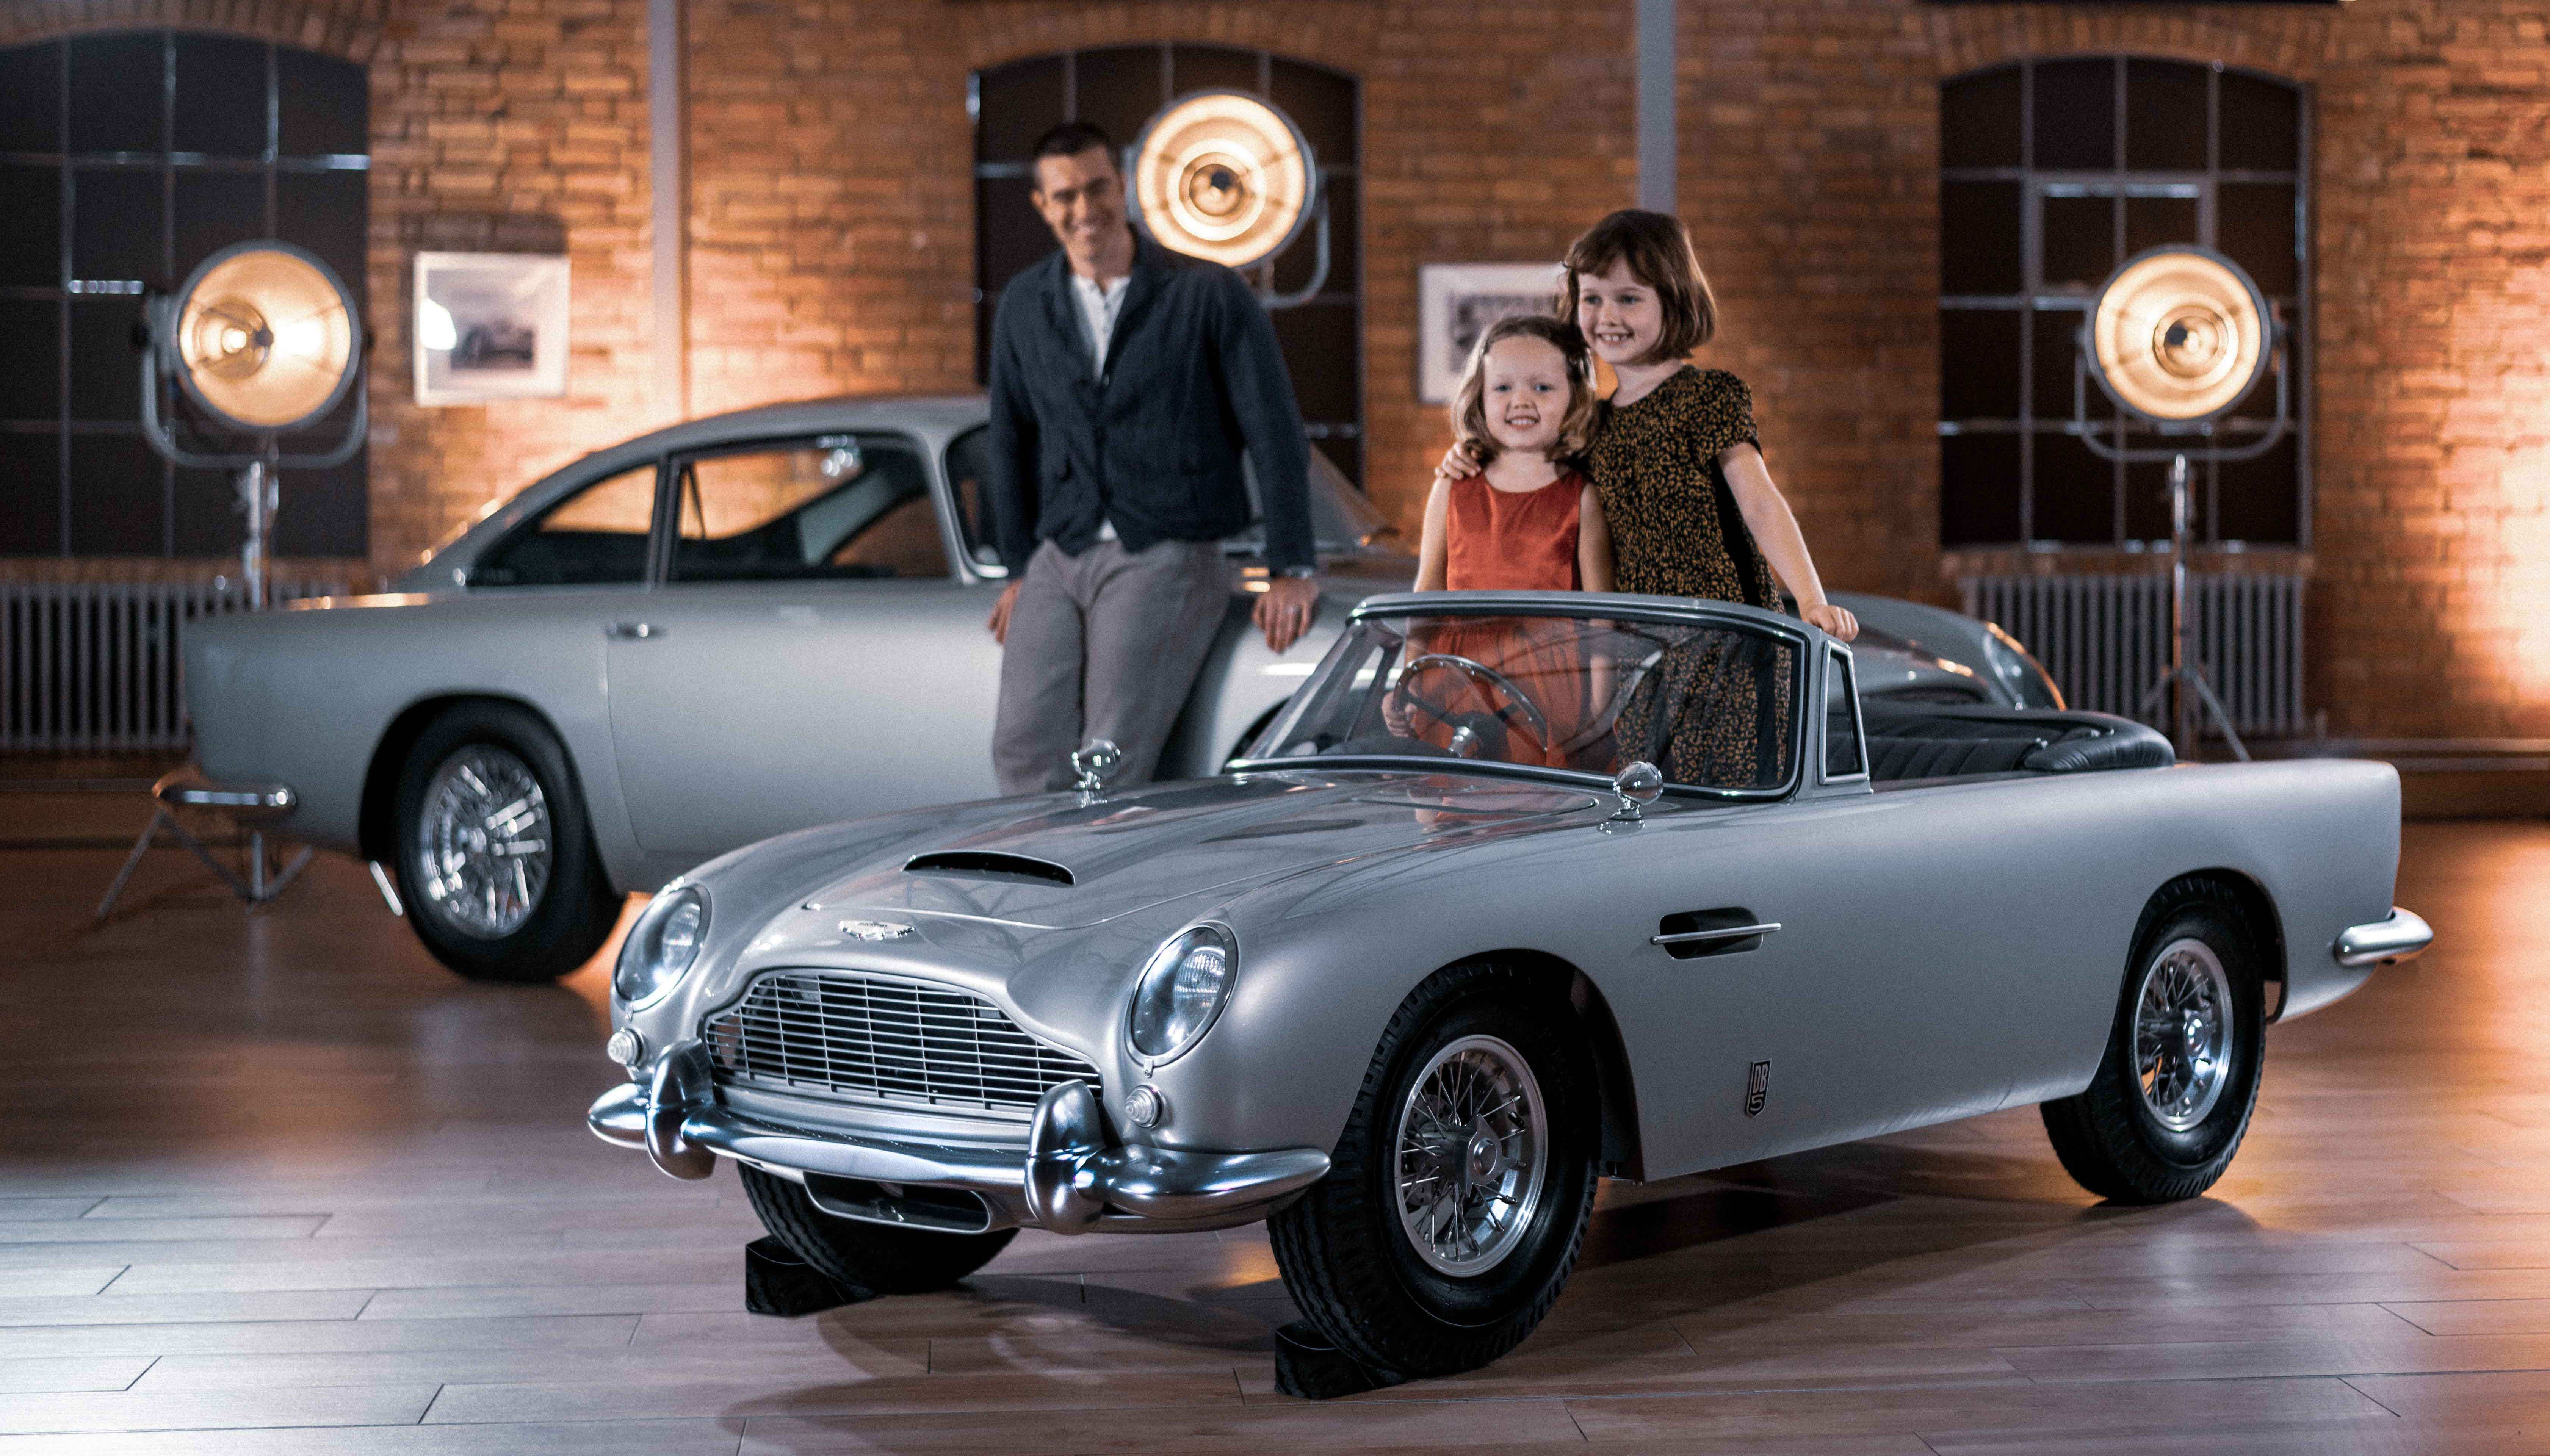 Aston Martin Unveils The Db5 Junior A Miniature Electric Version Of The Iconic Car Auto Futures